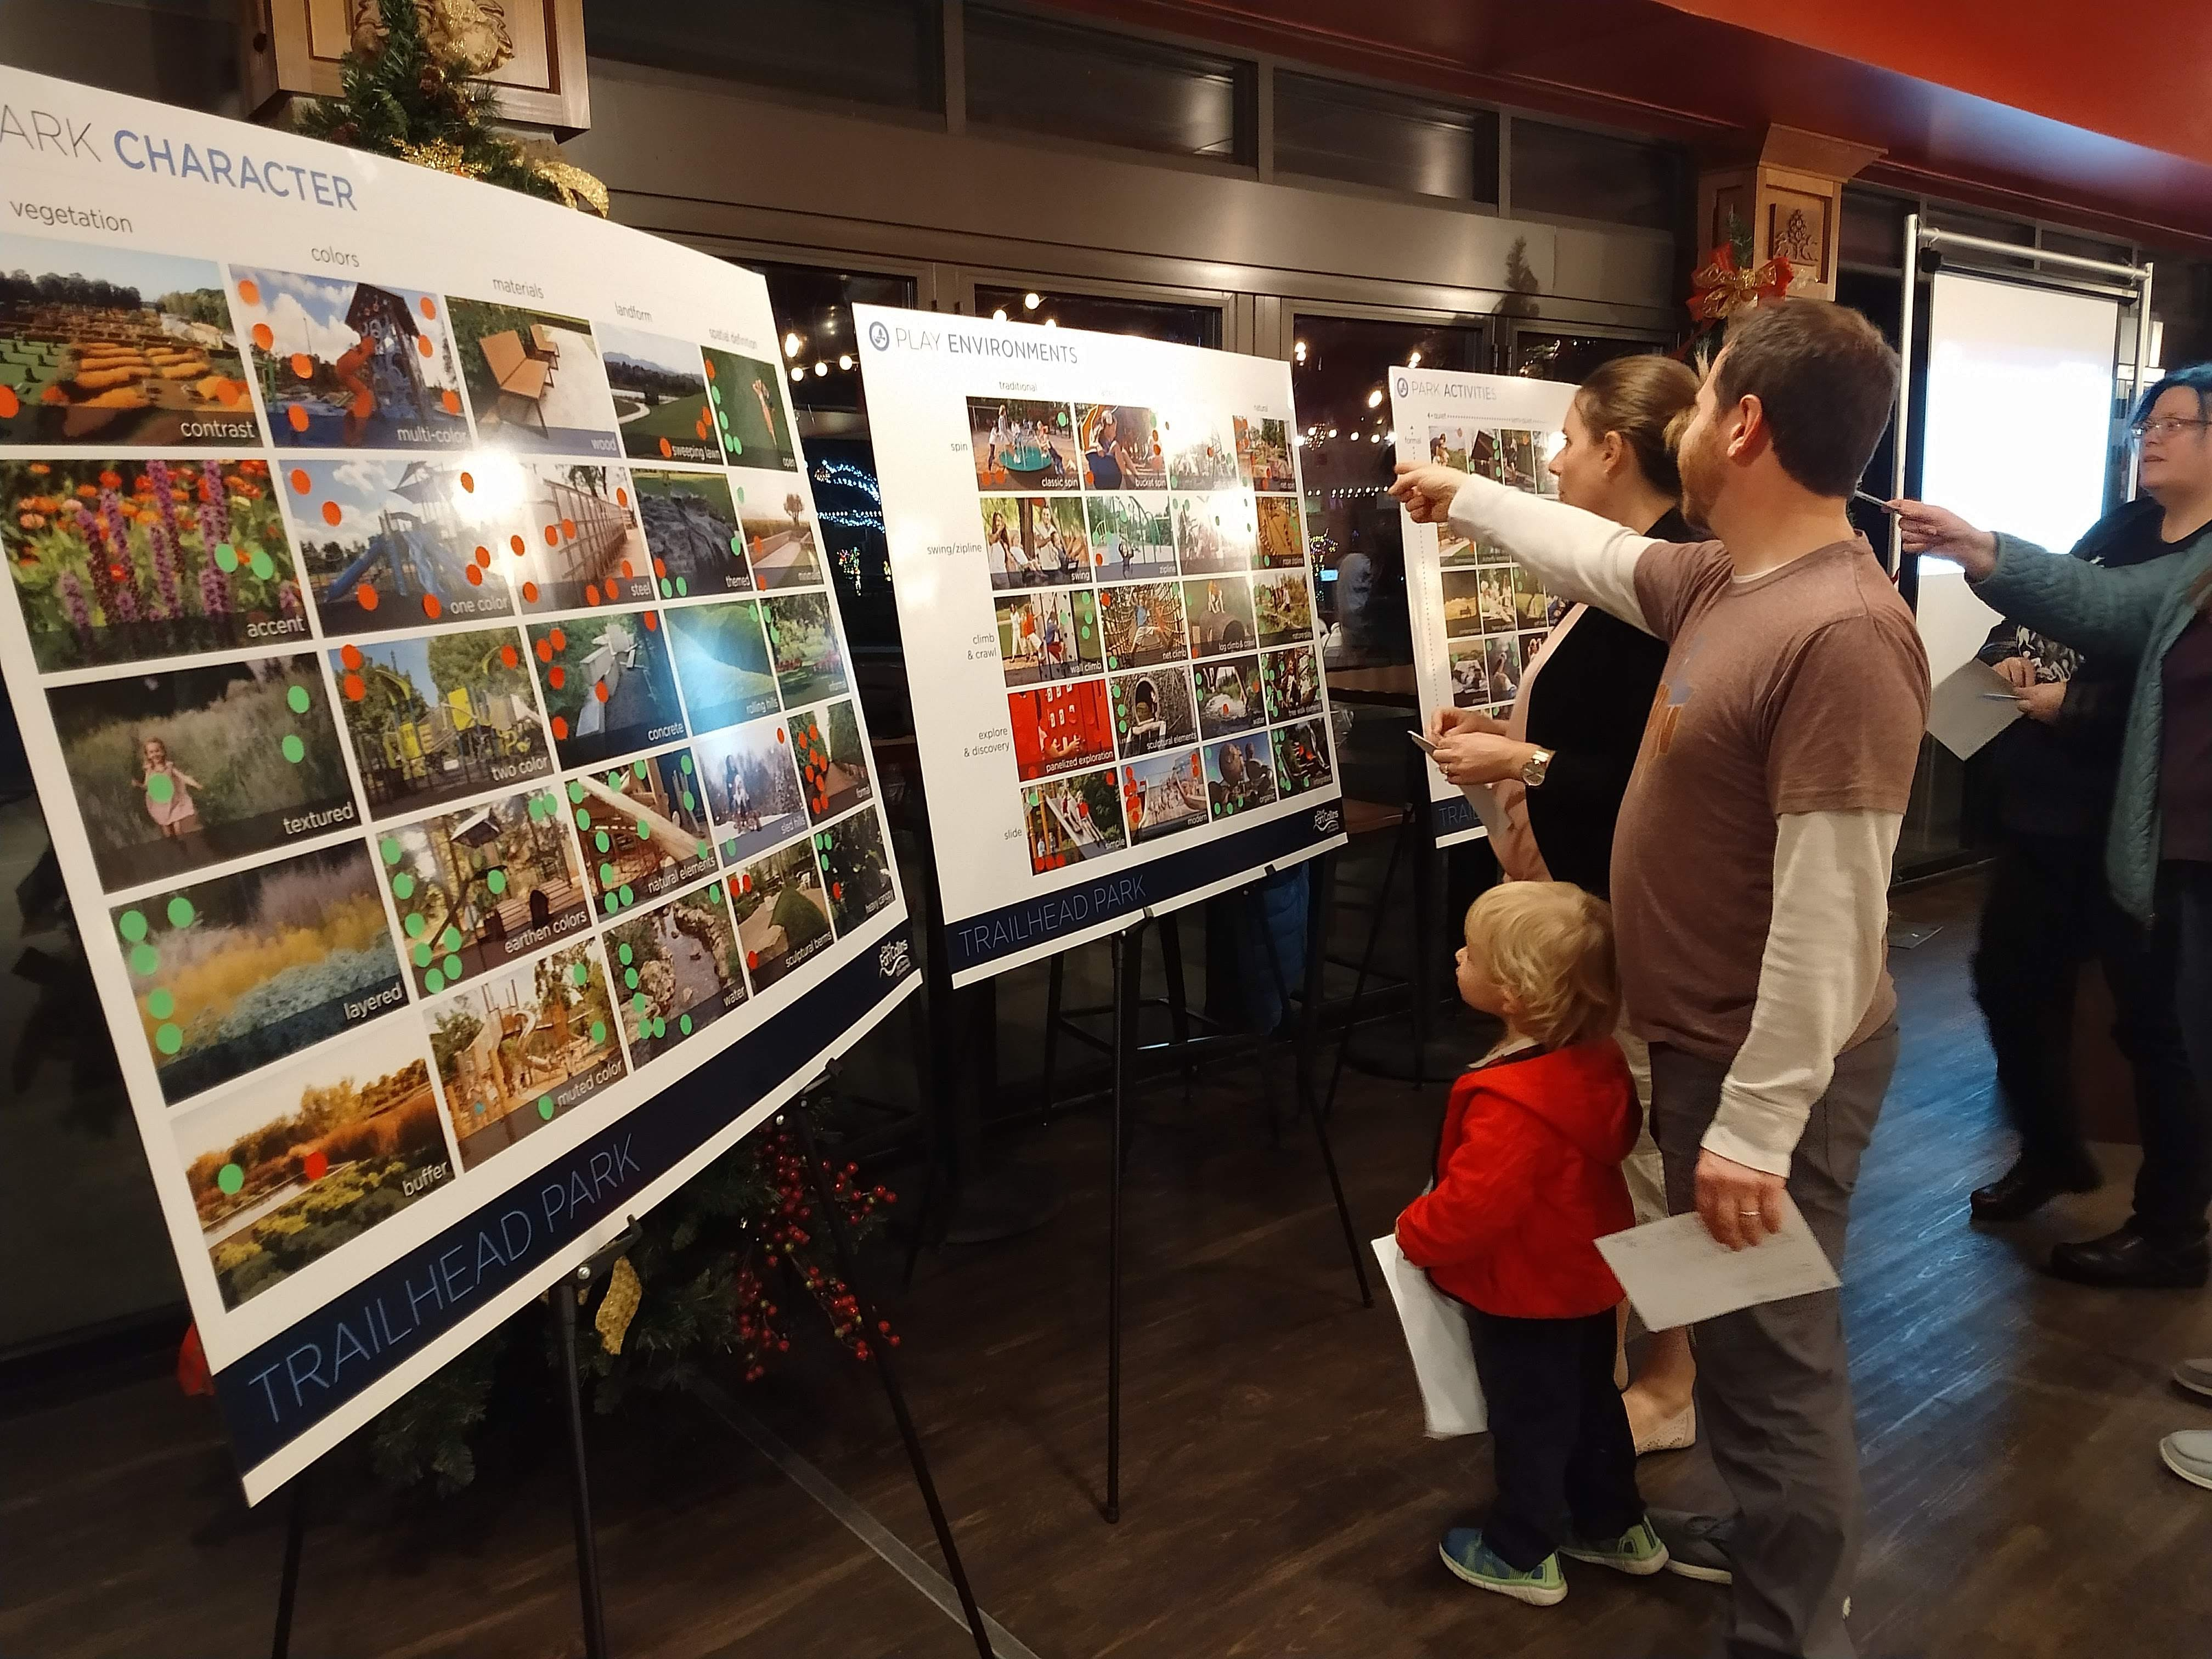 Attendees review plans on Trail Head Neighborhood Meeting